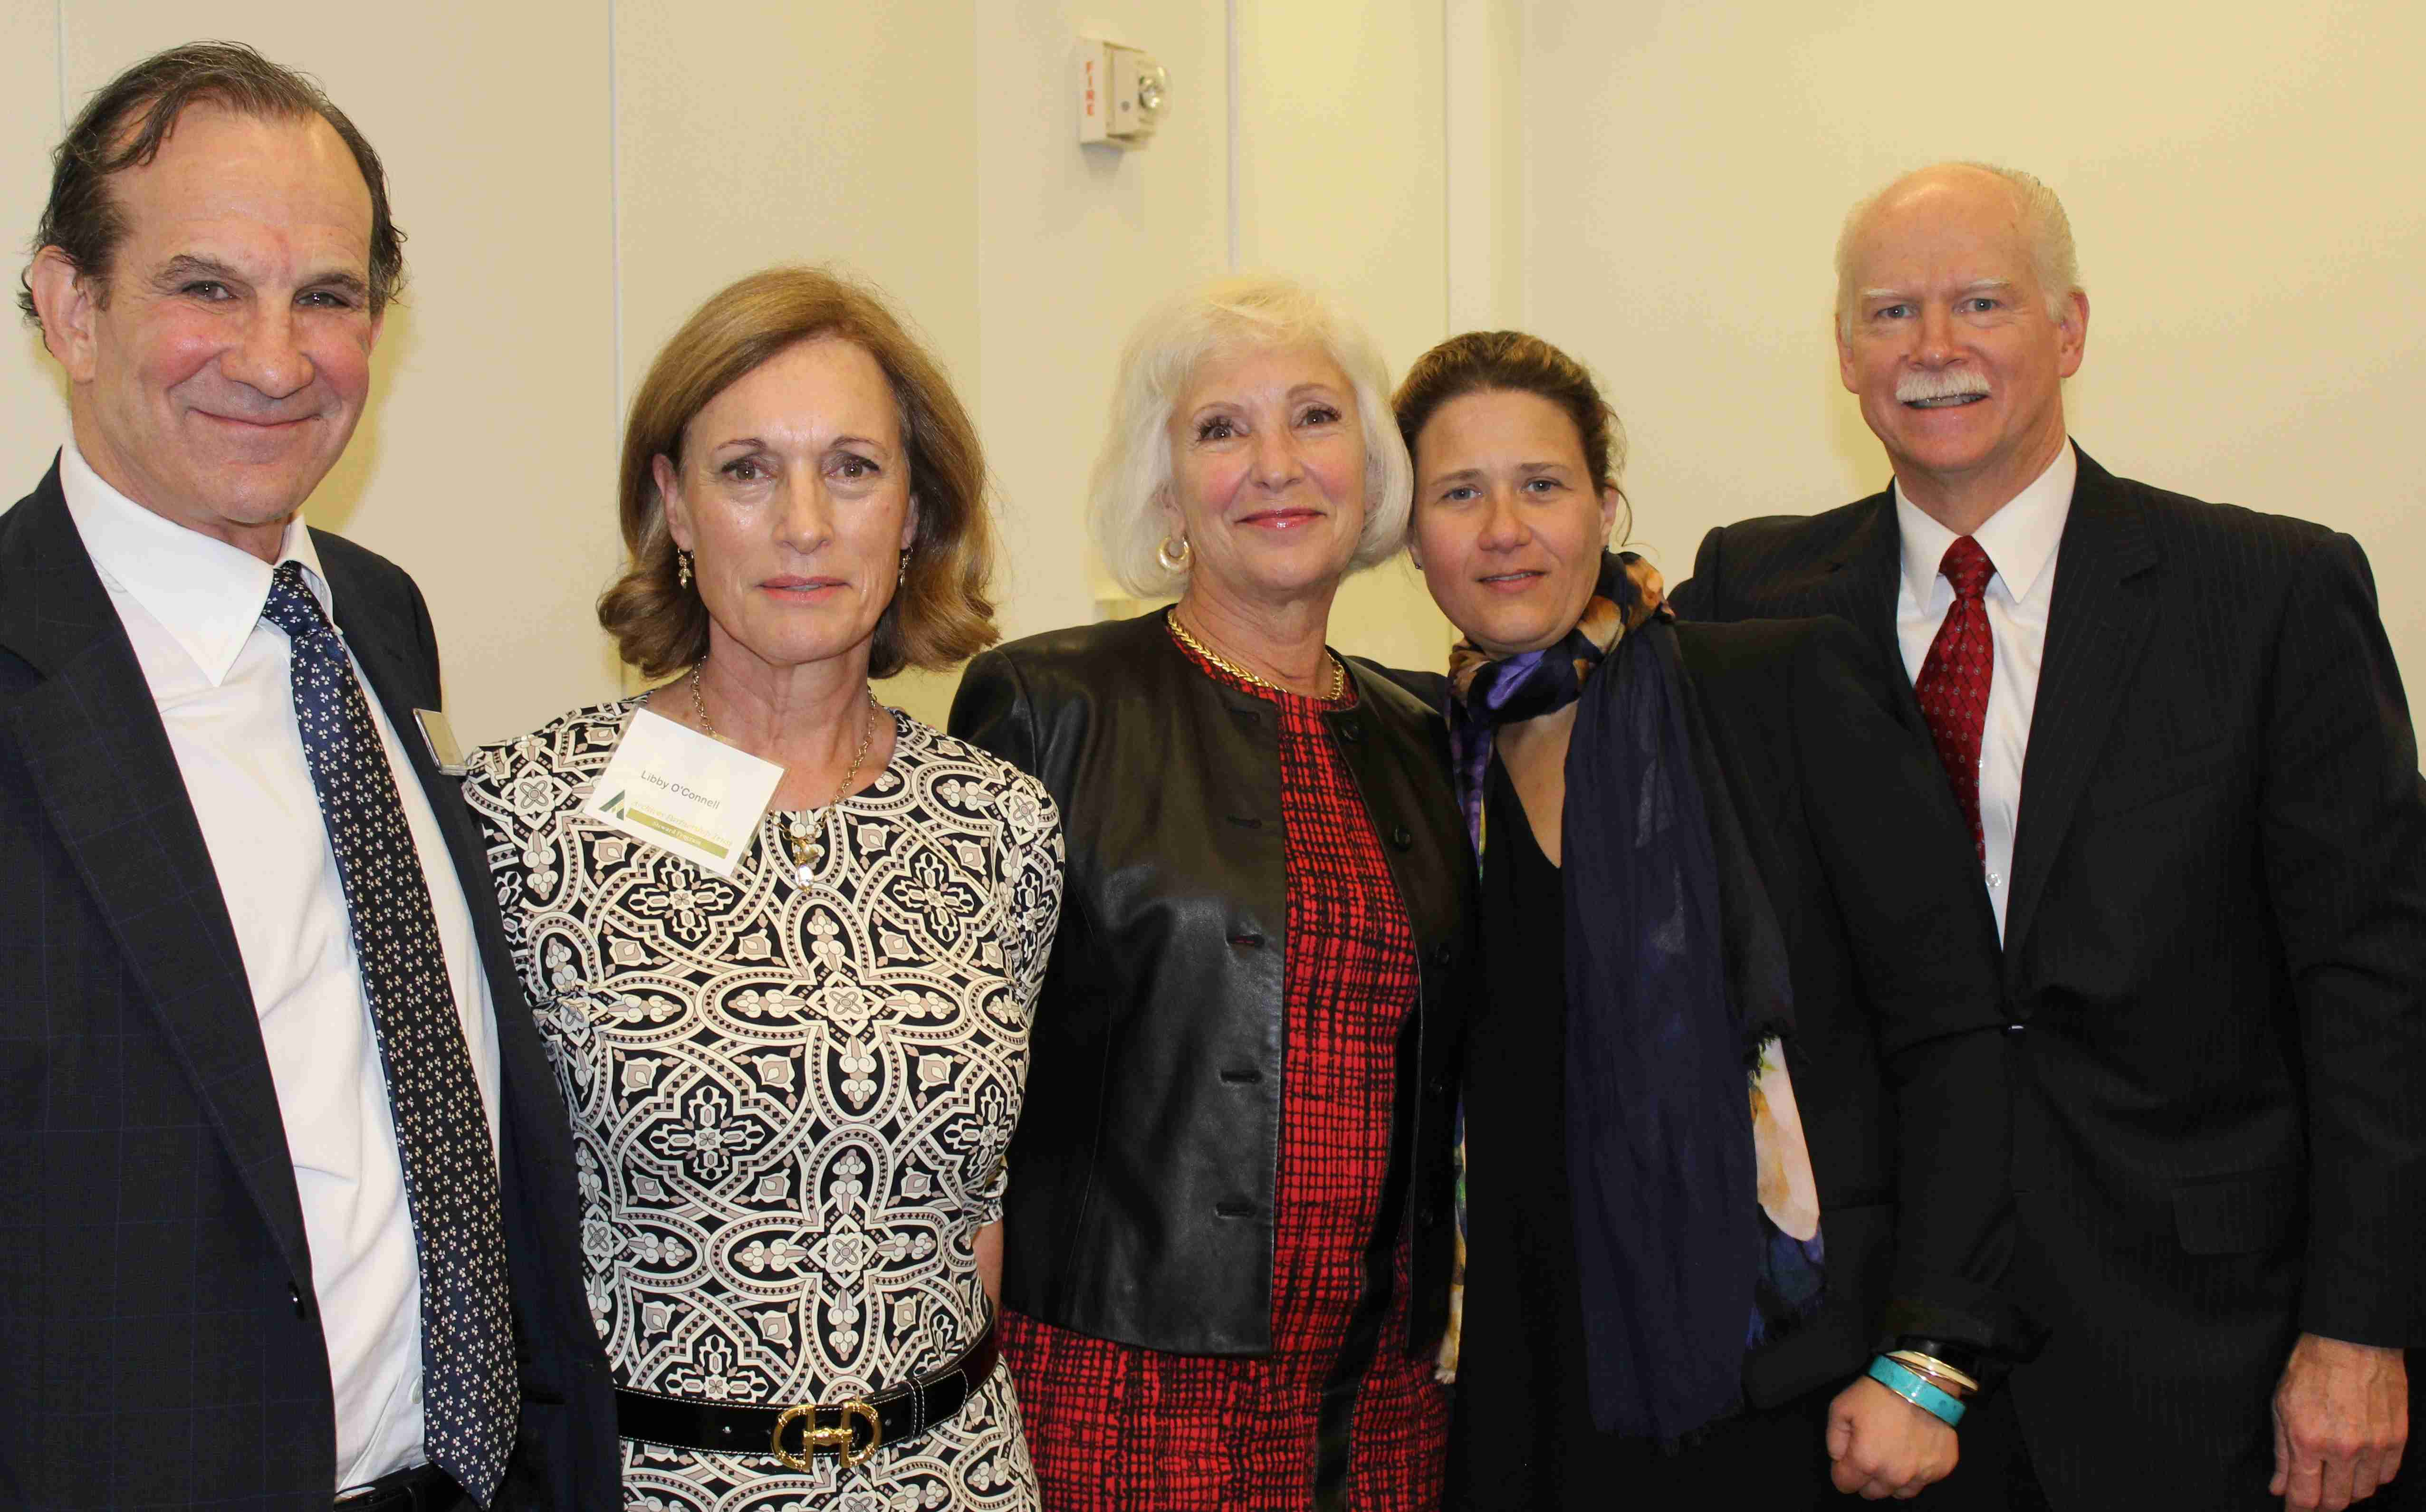 Ed Swyer, Dr. Libby O'Connell, Kathryn Curran, Kim Gilmore and George Hearst III